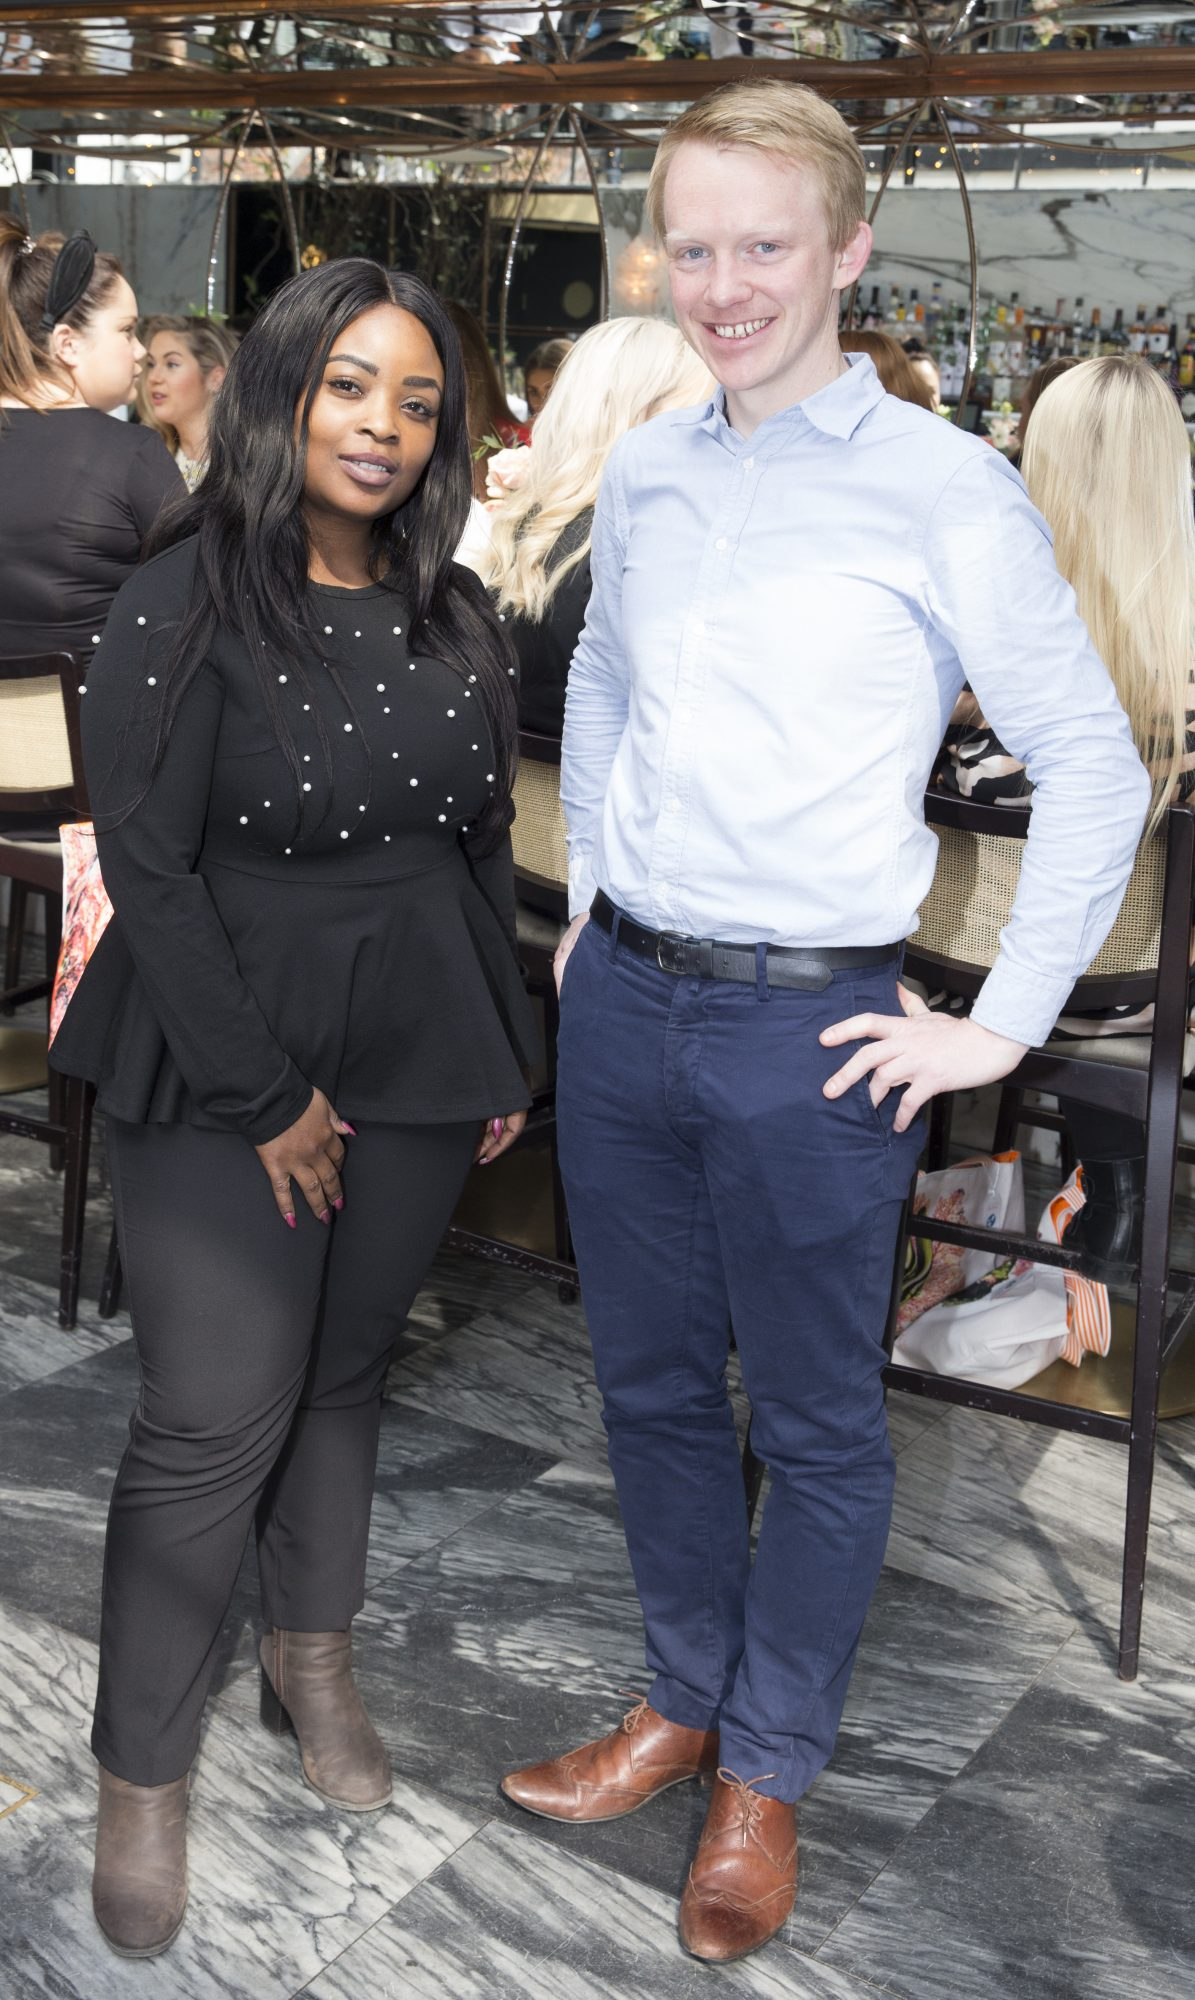 Pictured is Sai Oladeji and Patrick Welch at the launch of the new Avène Expert Suncare Range in The Grayson Dublin. The new range of suncare from the French brand is suitable for all skin types and includes a Sports Sun Cream, a City Shield BB Style High Protection Face Cream, two new SPF Body Sprays and a new Very High Protection Children's SPF. For more information visit www.avene.ie. Photo: Leon Farrell/Photocall Ireland.